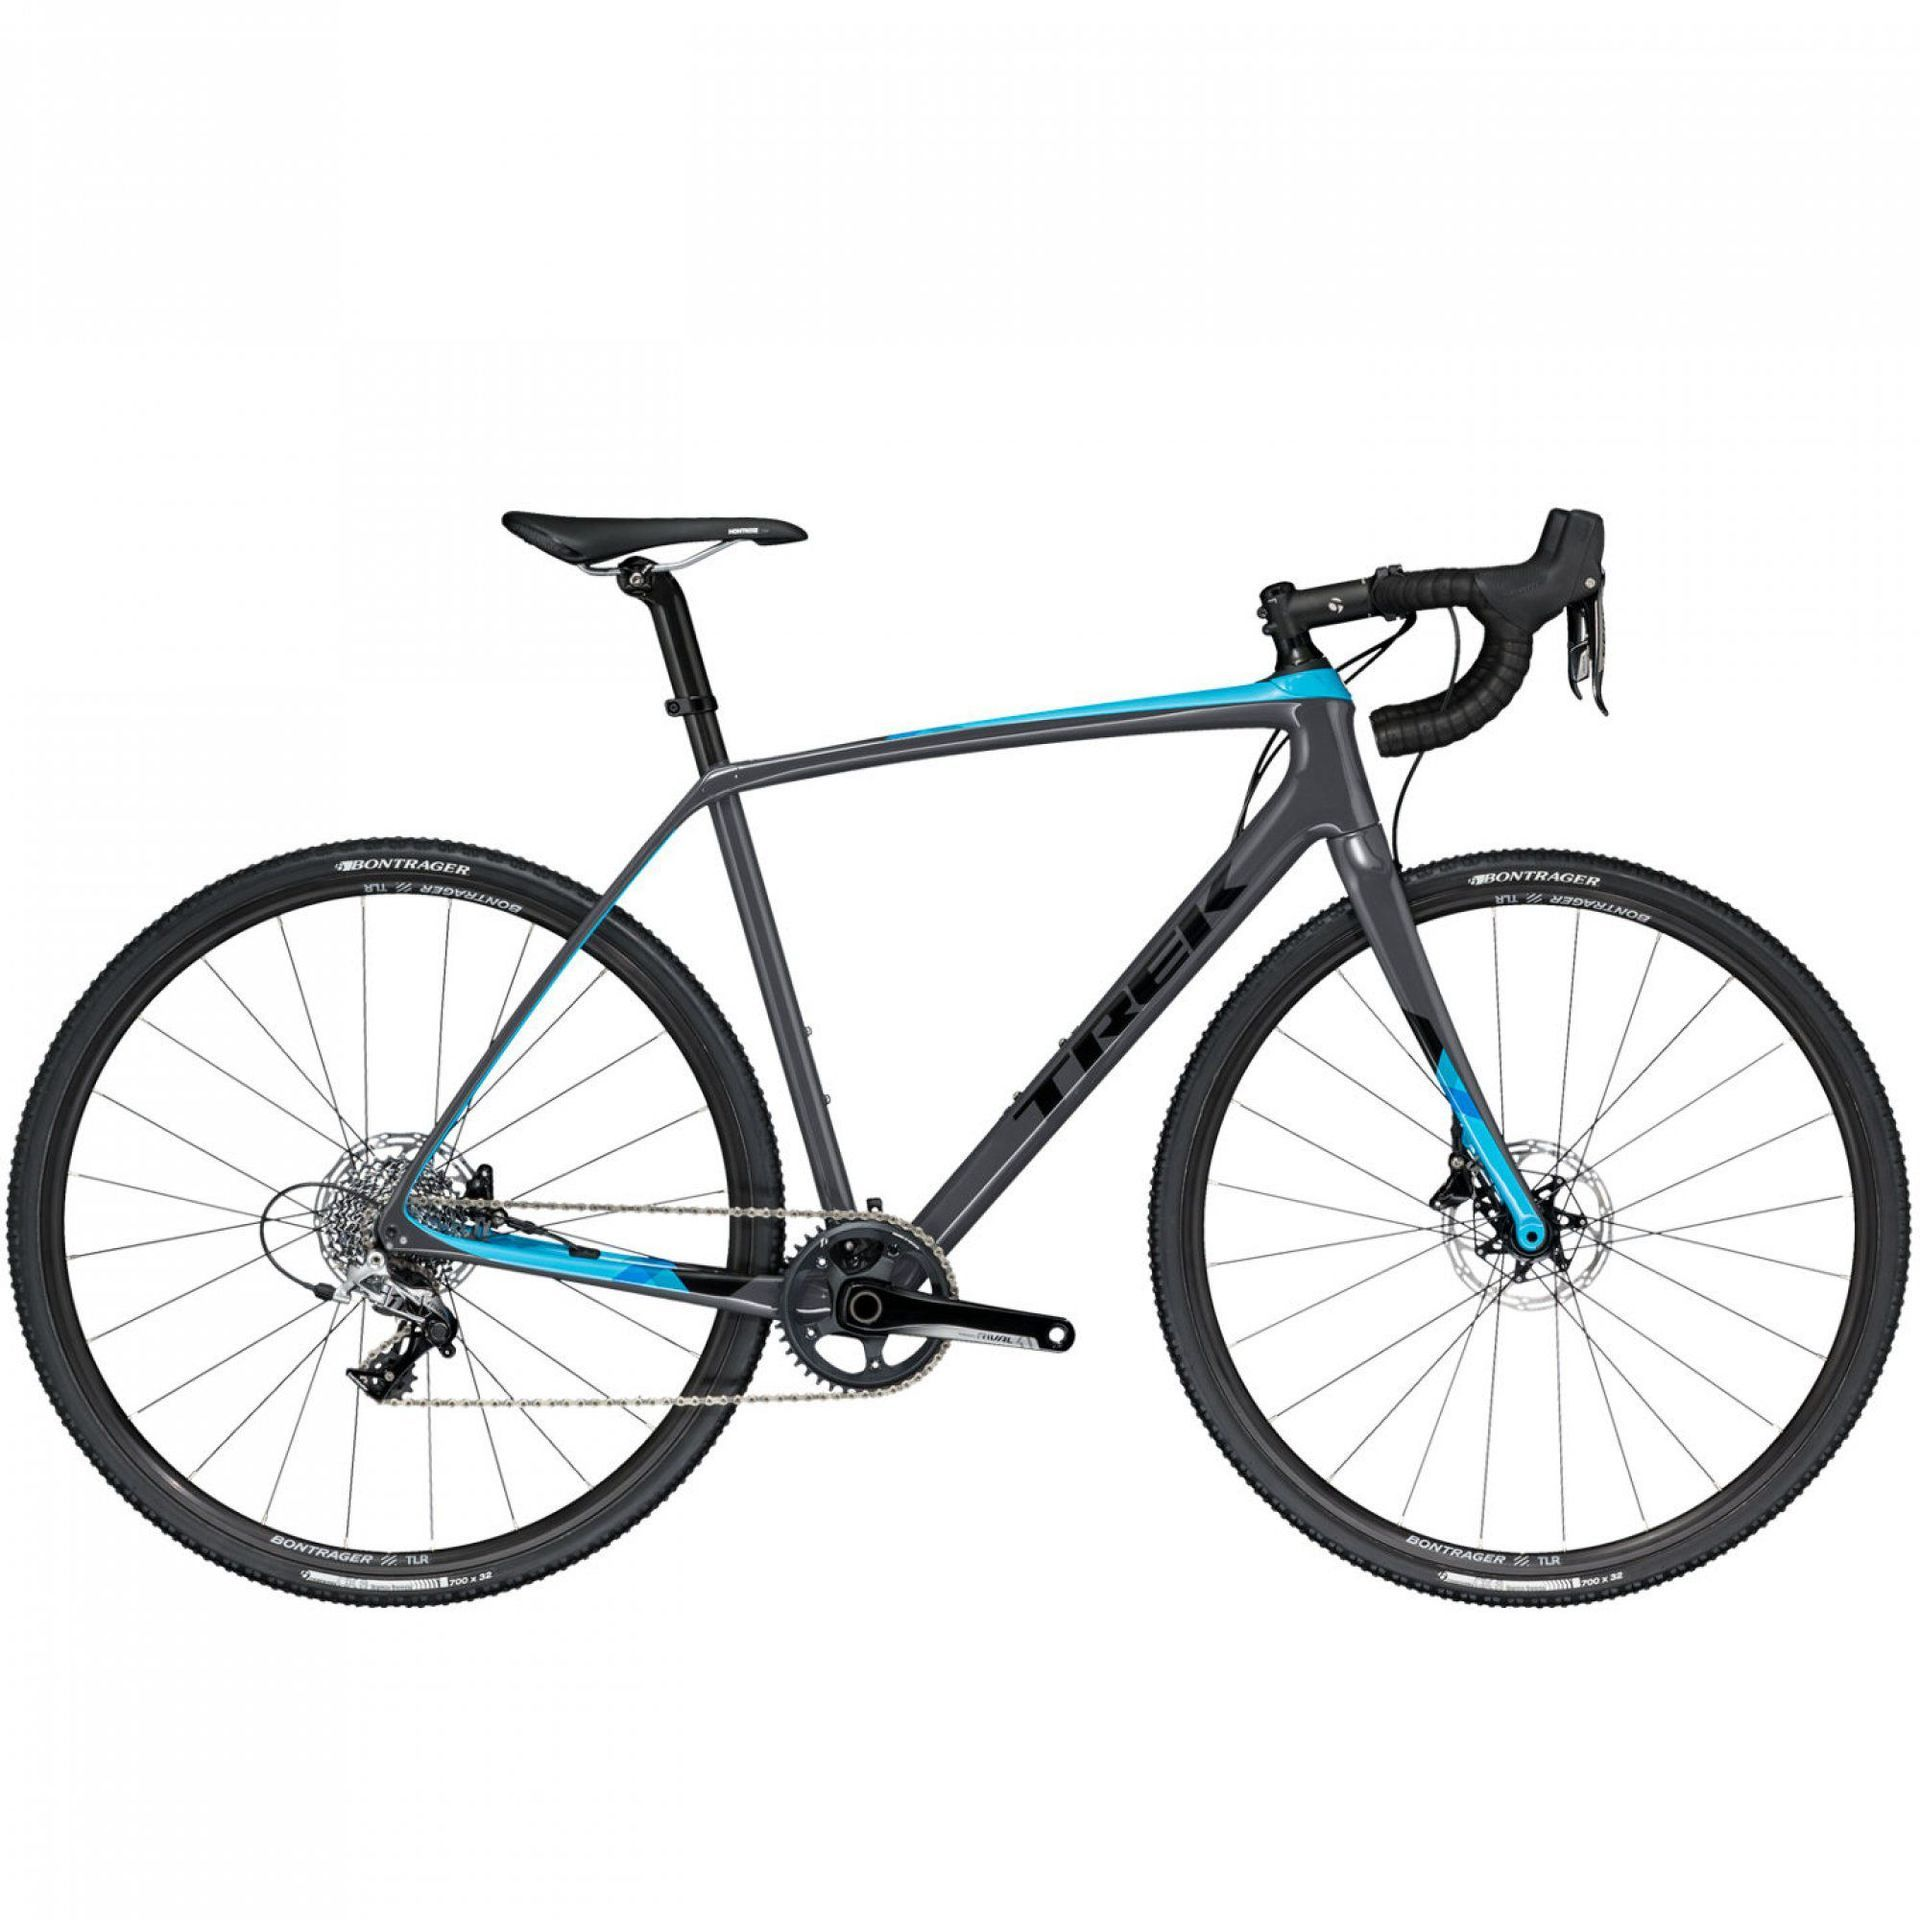 ROWER TREK BOONE 5 DISC SOLID CHARCOAL|CALIFORNIA SKY BLUE 1